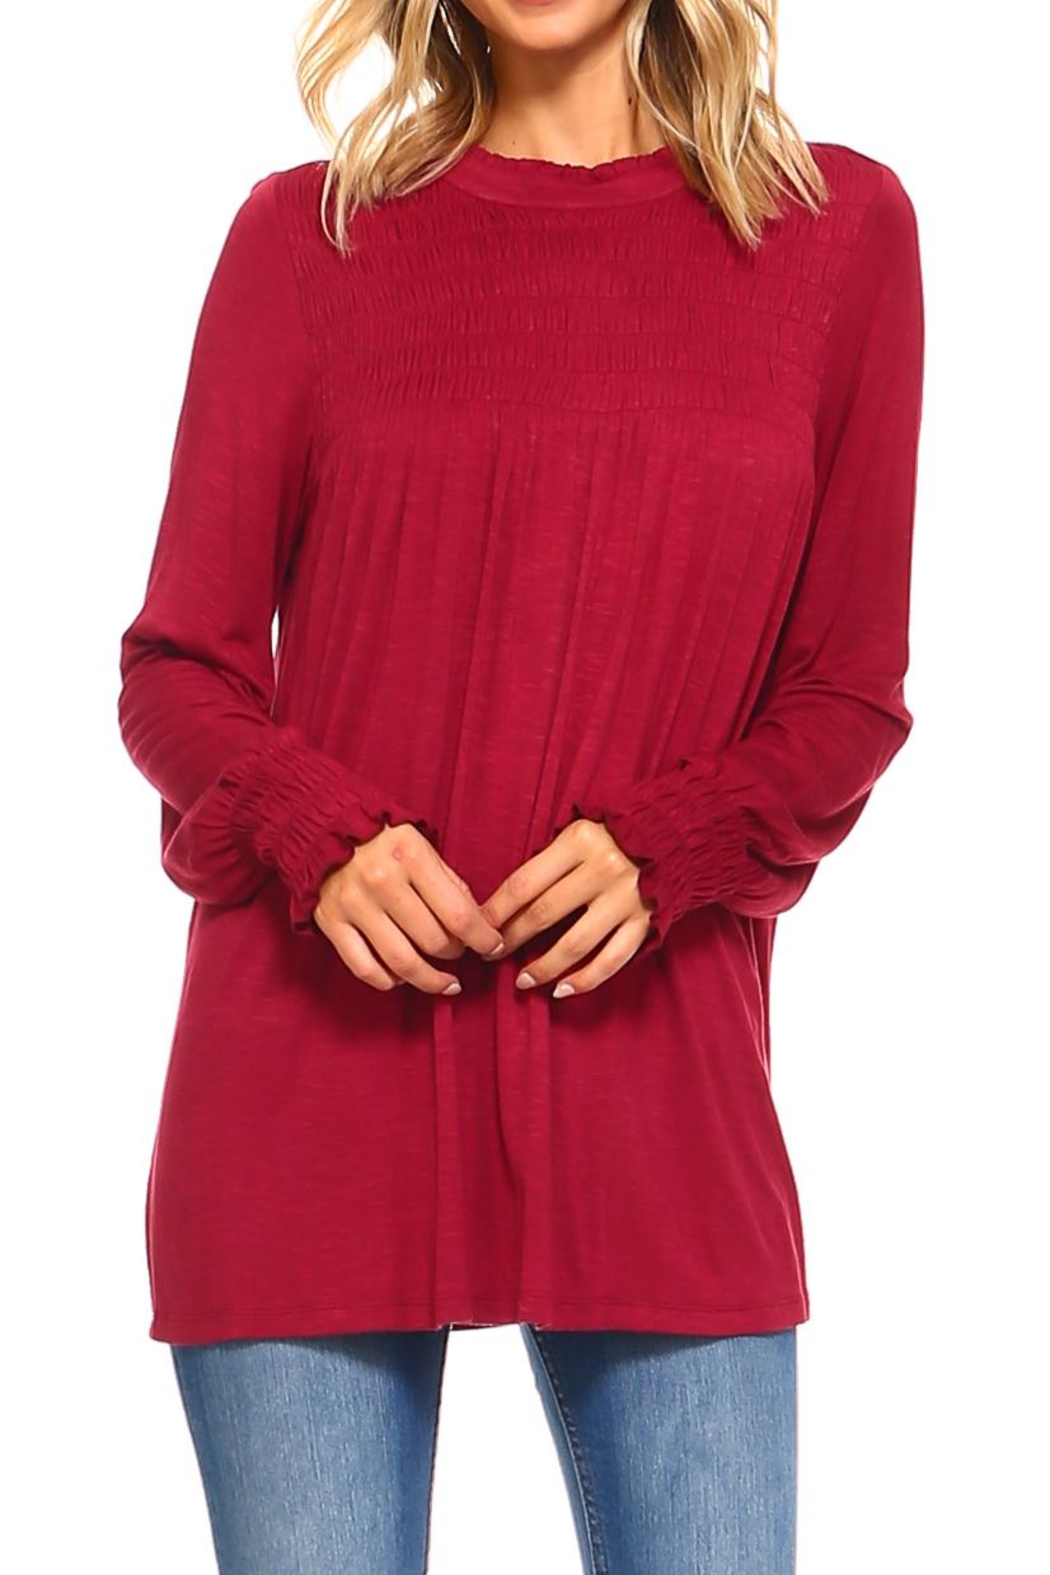 rxb Solid Knit Top - Main Image